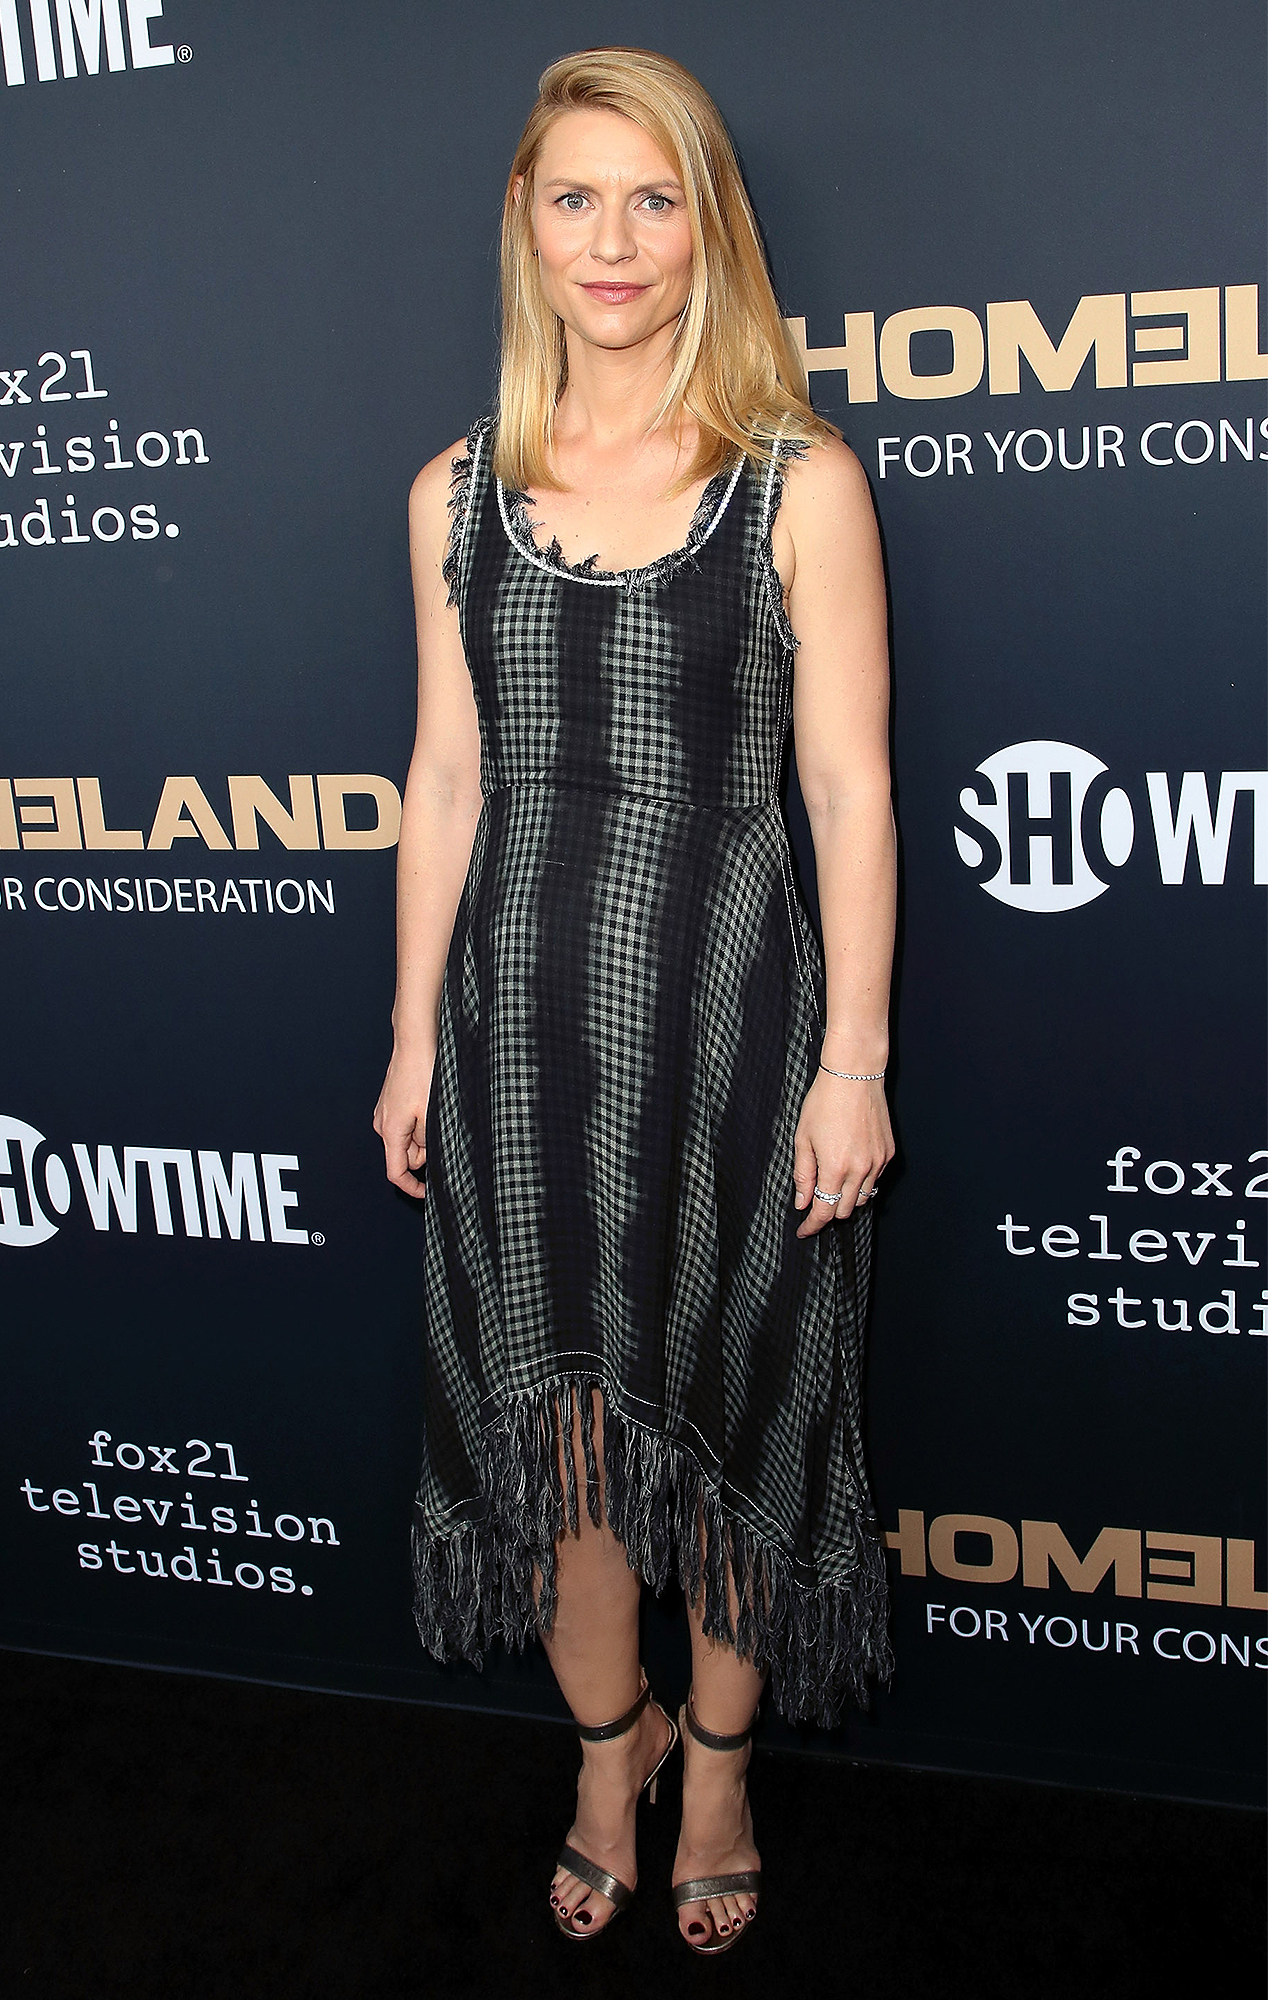 claire danes is enjoying pregnancy while on hiatus from filming